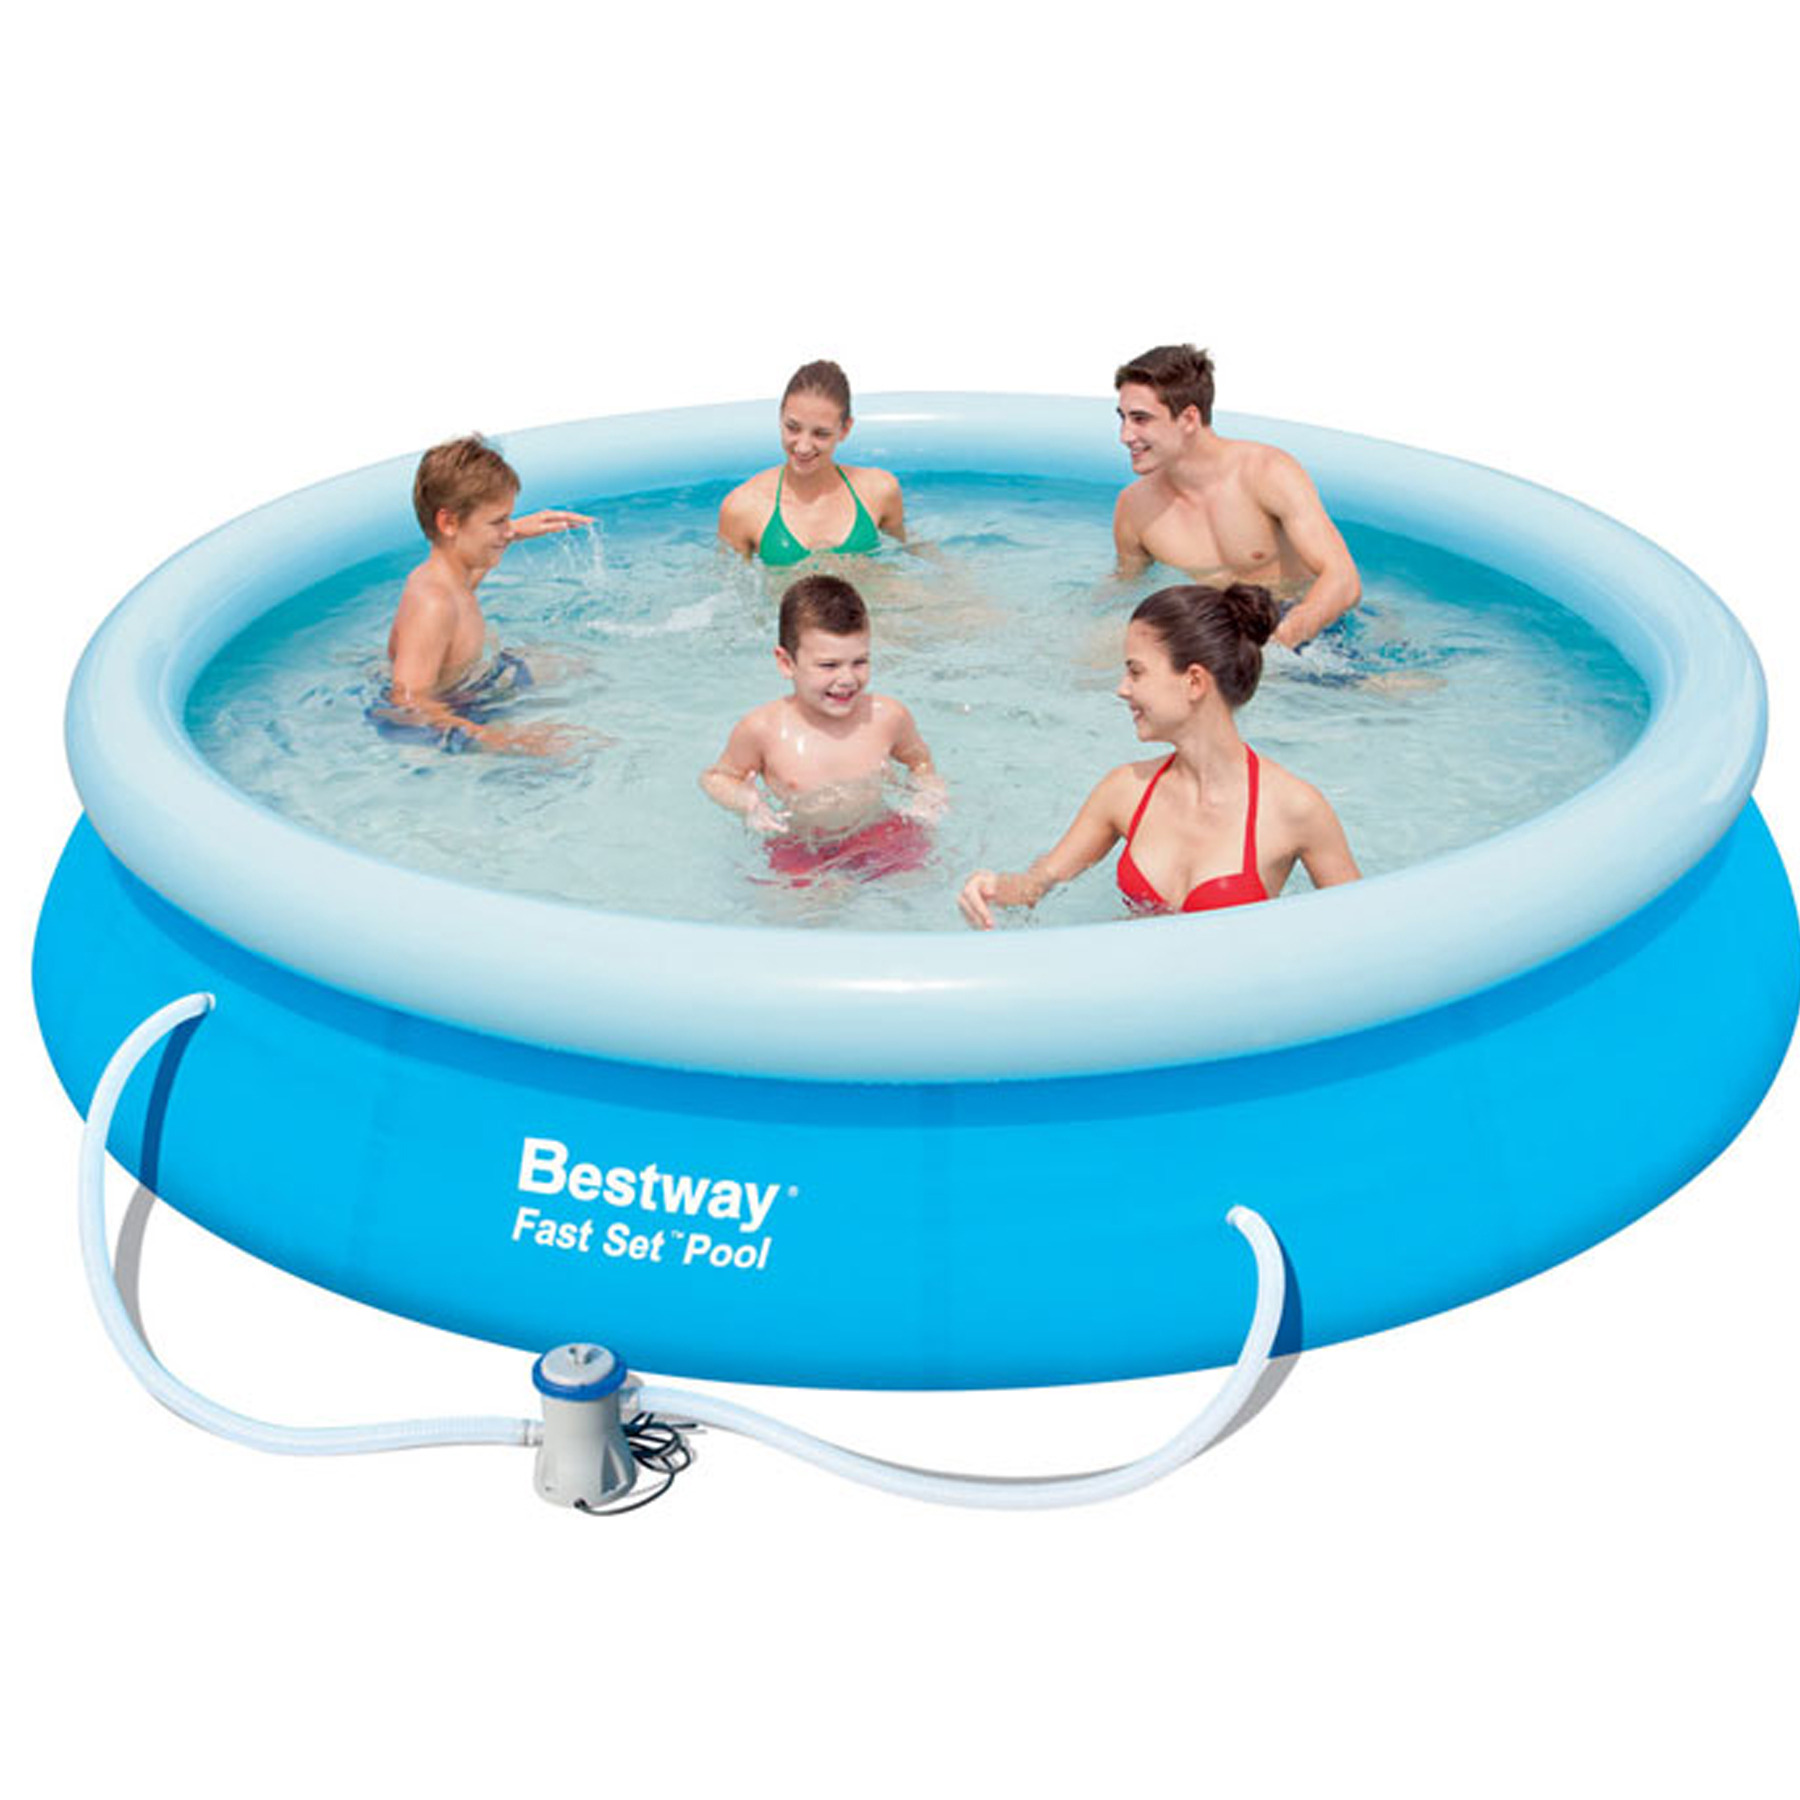 Todas as possibilidades de uma piscina de pl stico for Piscina inflable bestway